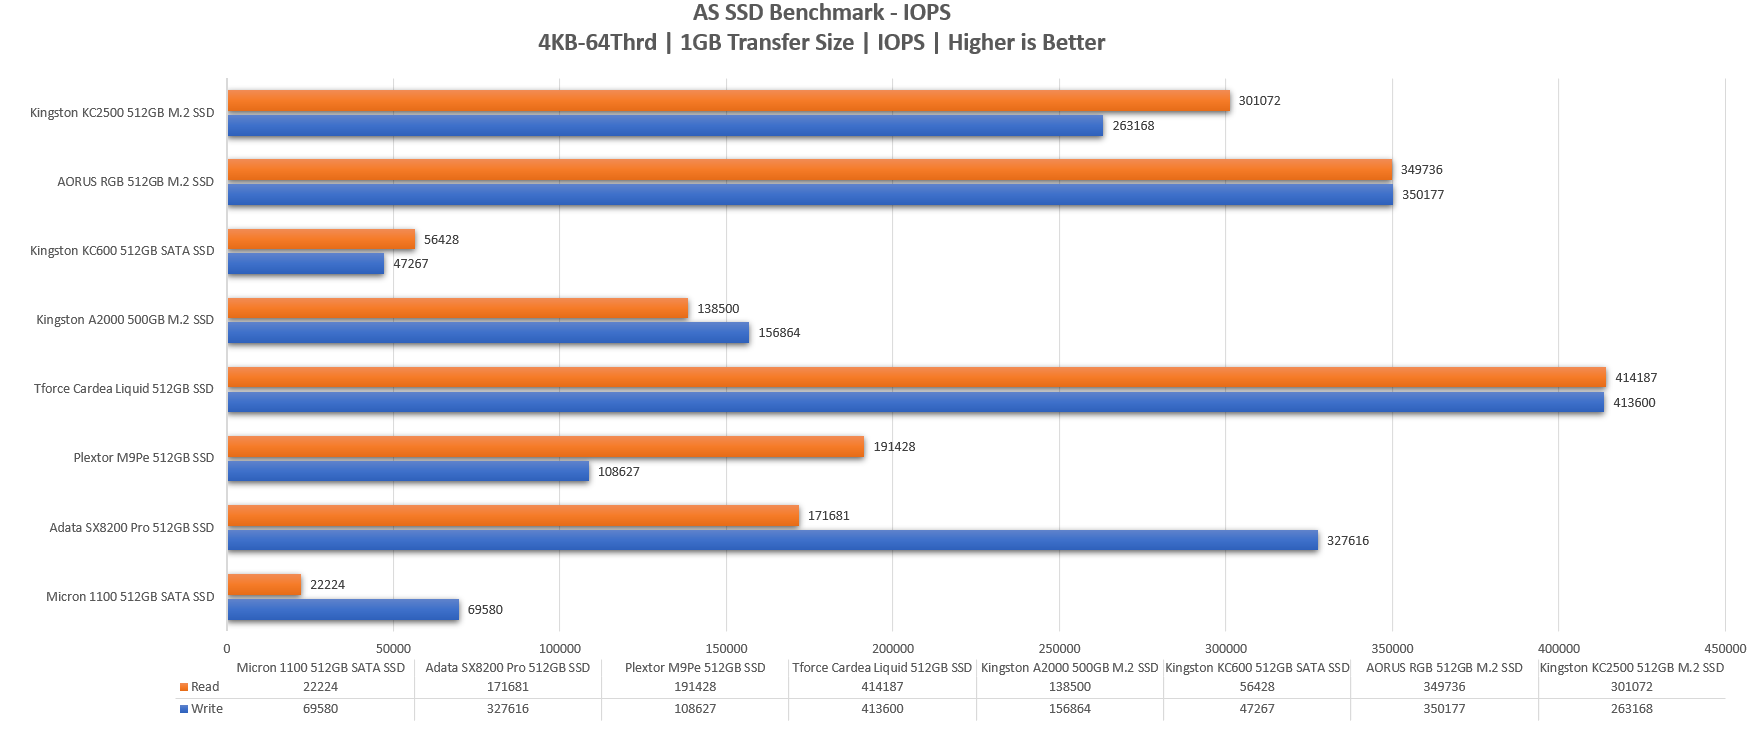 KC2500 - AS SSD IOPS 1GB